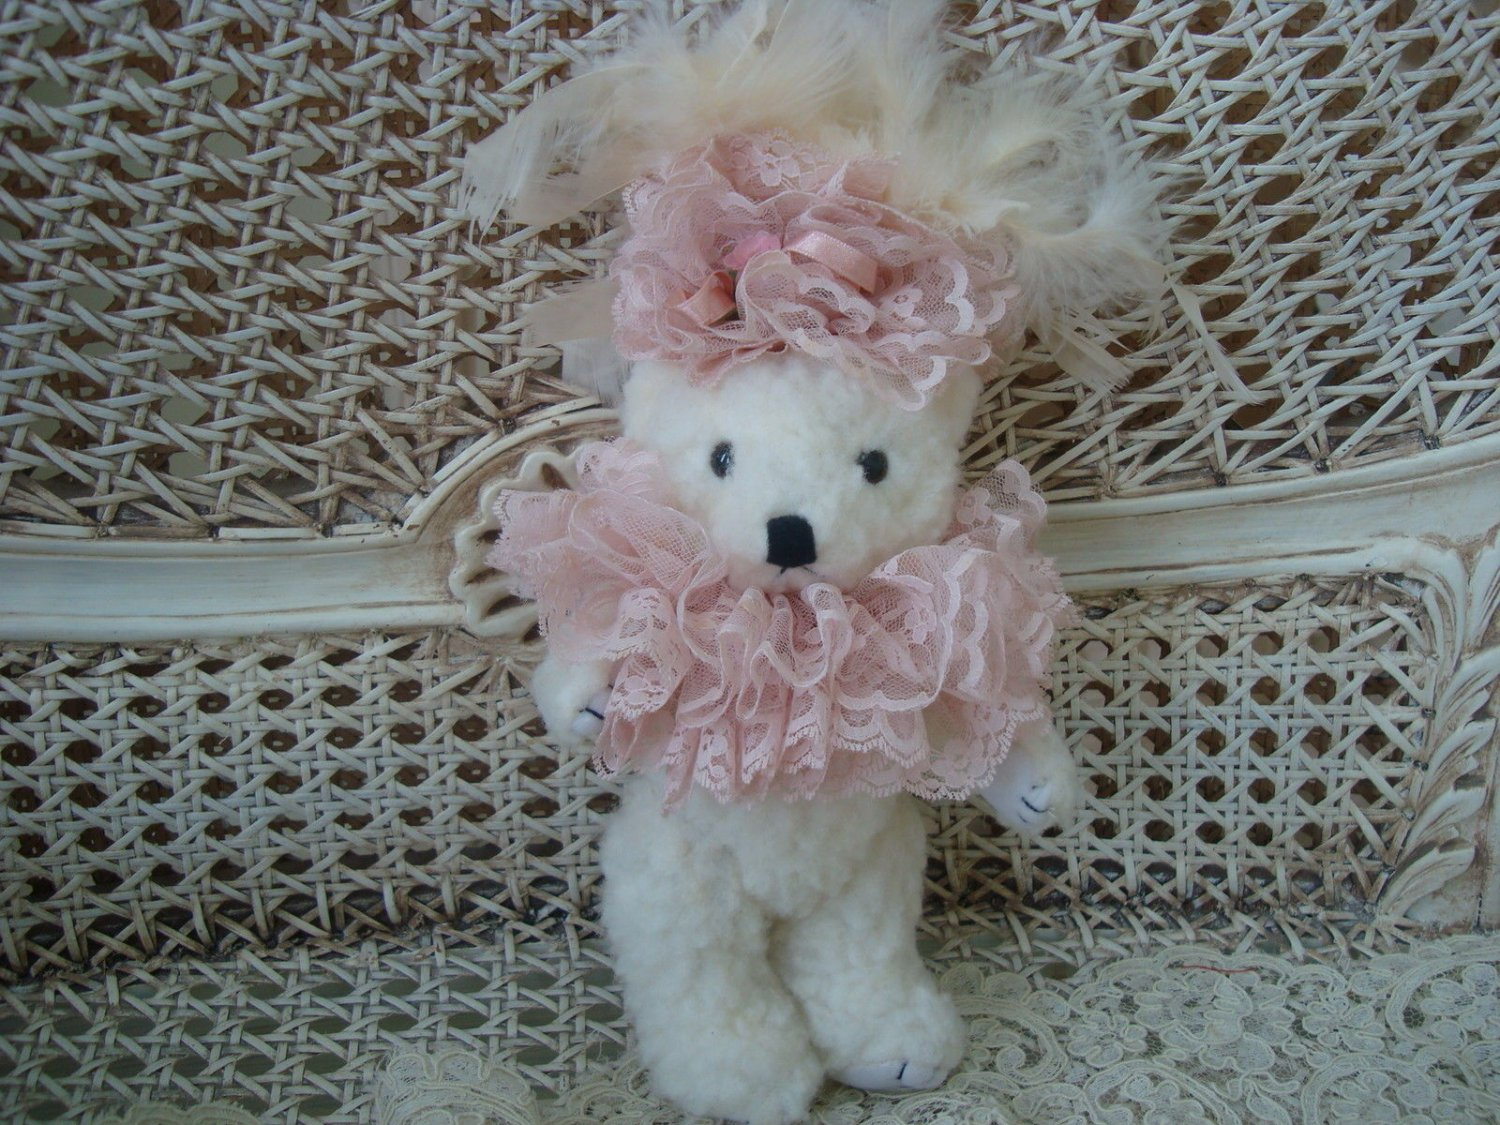 GORGEOUS VINTAGE TEDDYBEAR WITH WHIMSICAL LACE COLLAR VERY UNIQUE ***GREAT FOR EASTER***